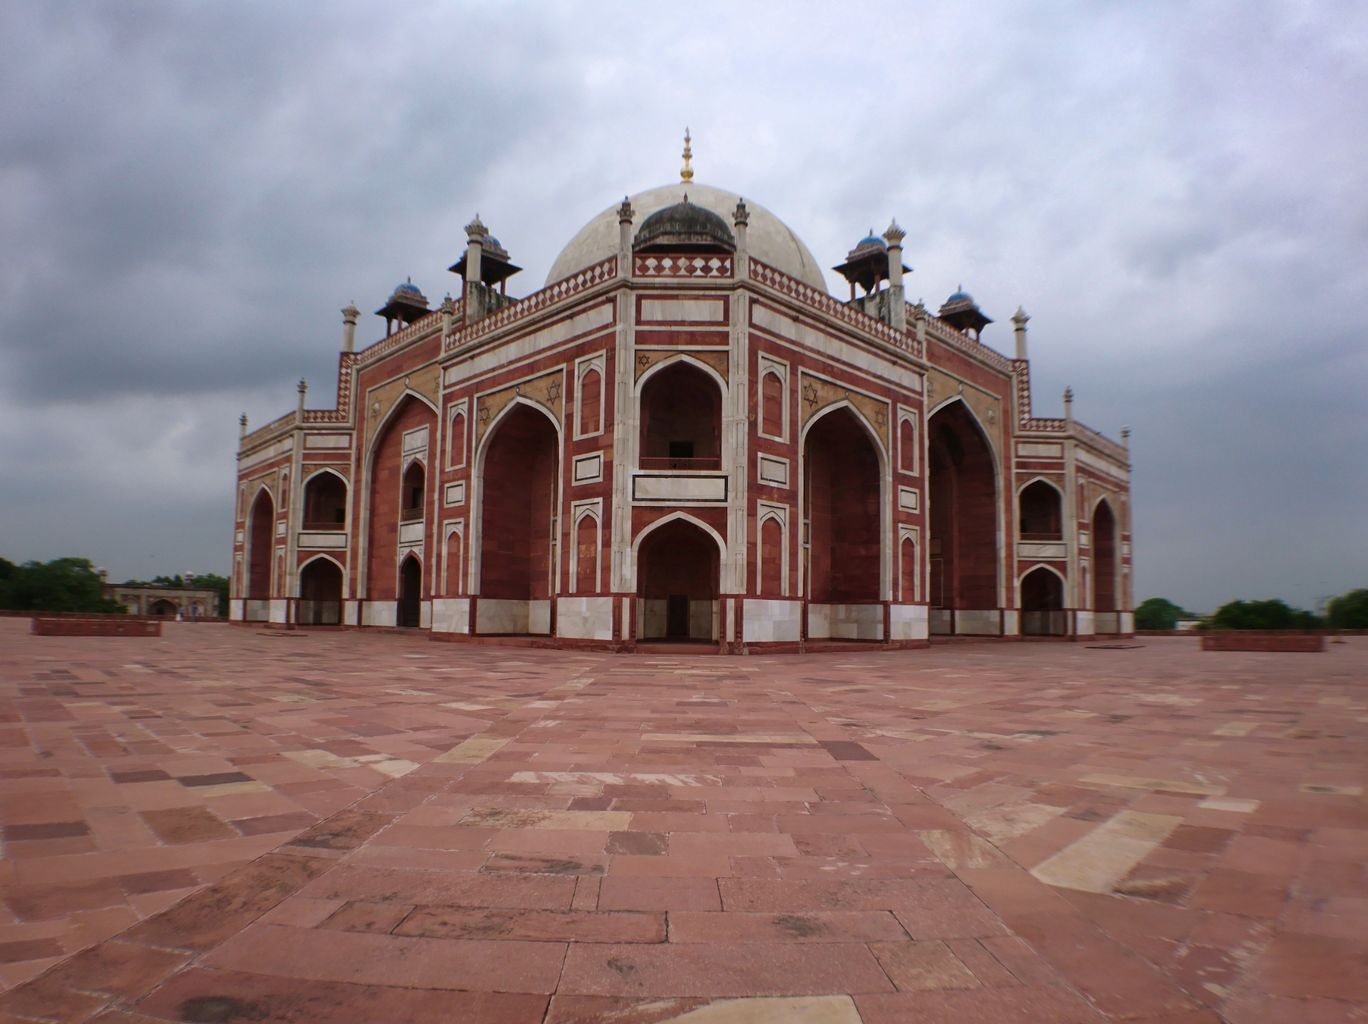 Photo of Humayun's Tomb By sachin chauhan